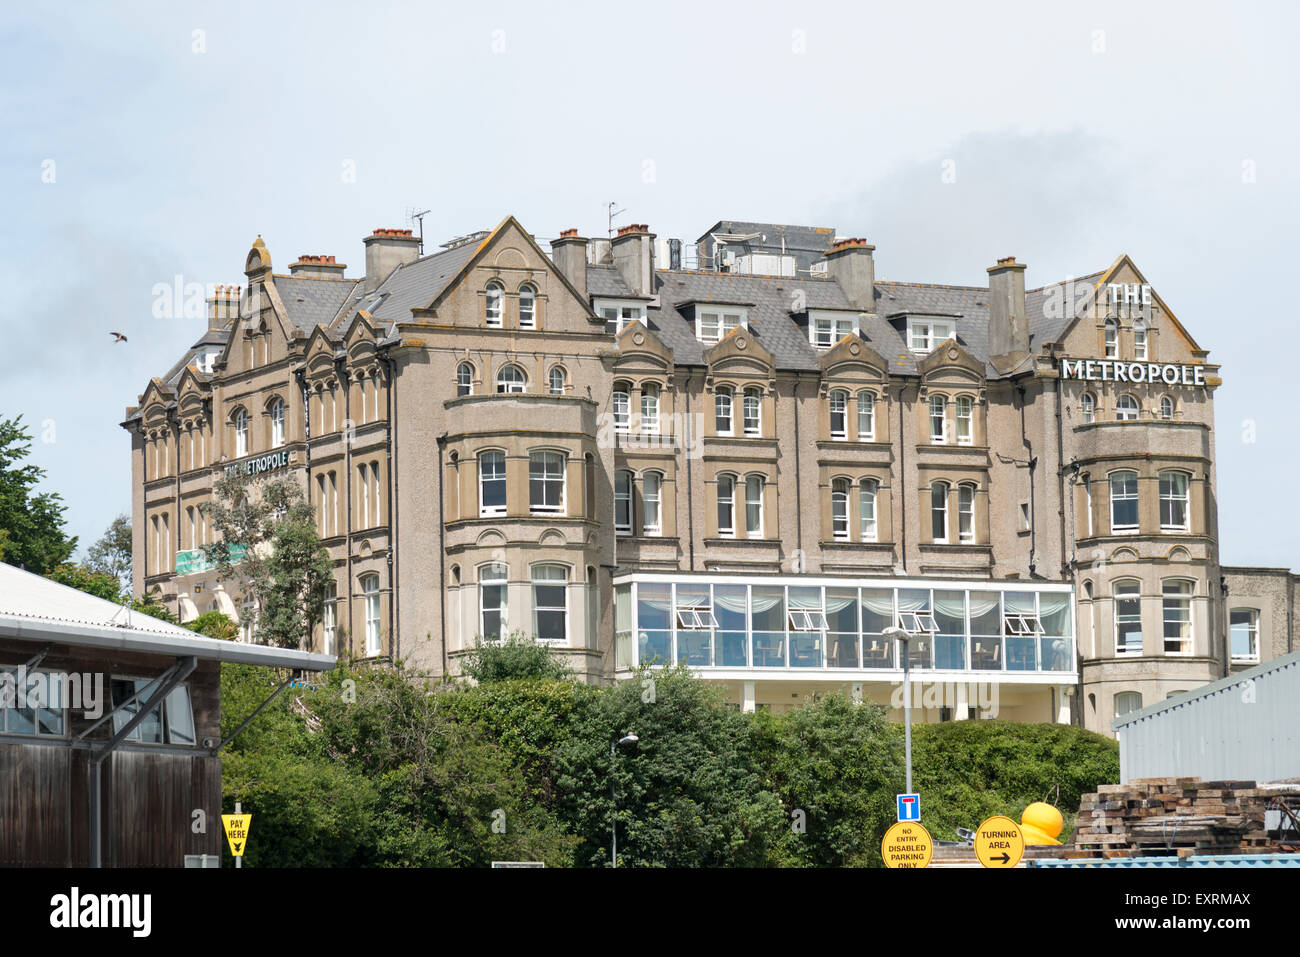 The Metropole Hotel Padstow Cornwall UK - Stock Image